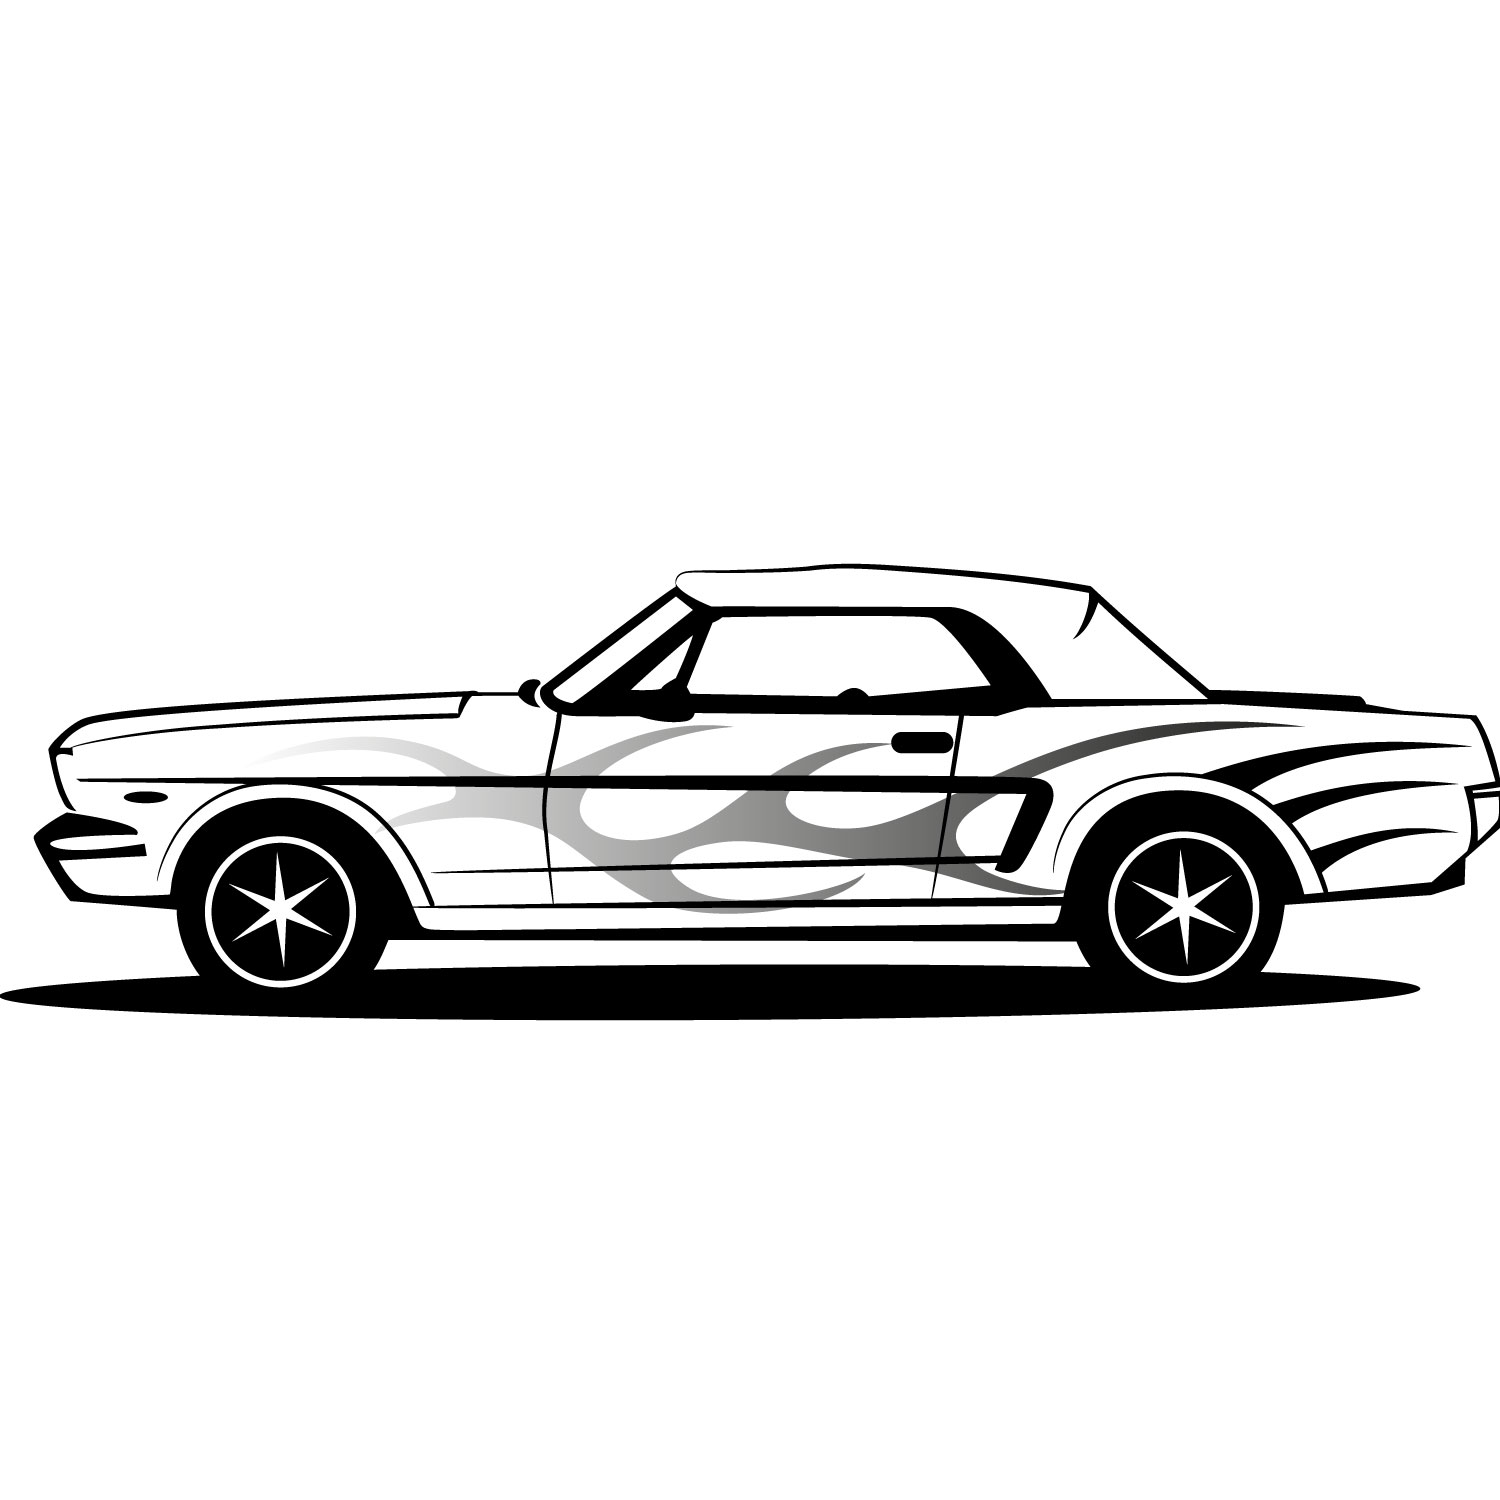 1500x1500 Ford Clipart Classic Mustang Car